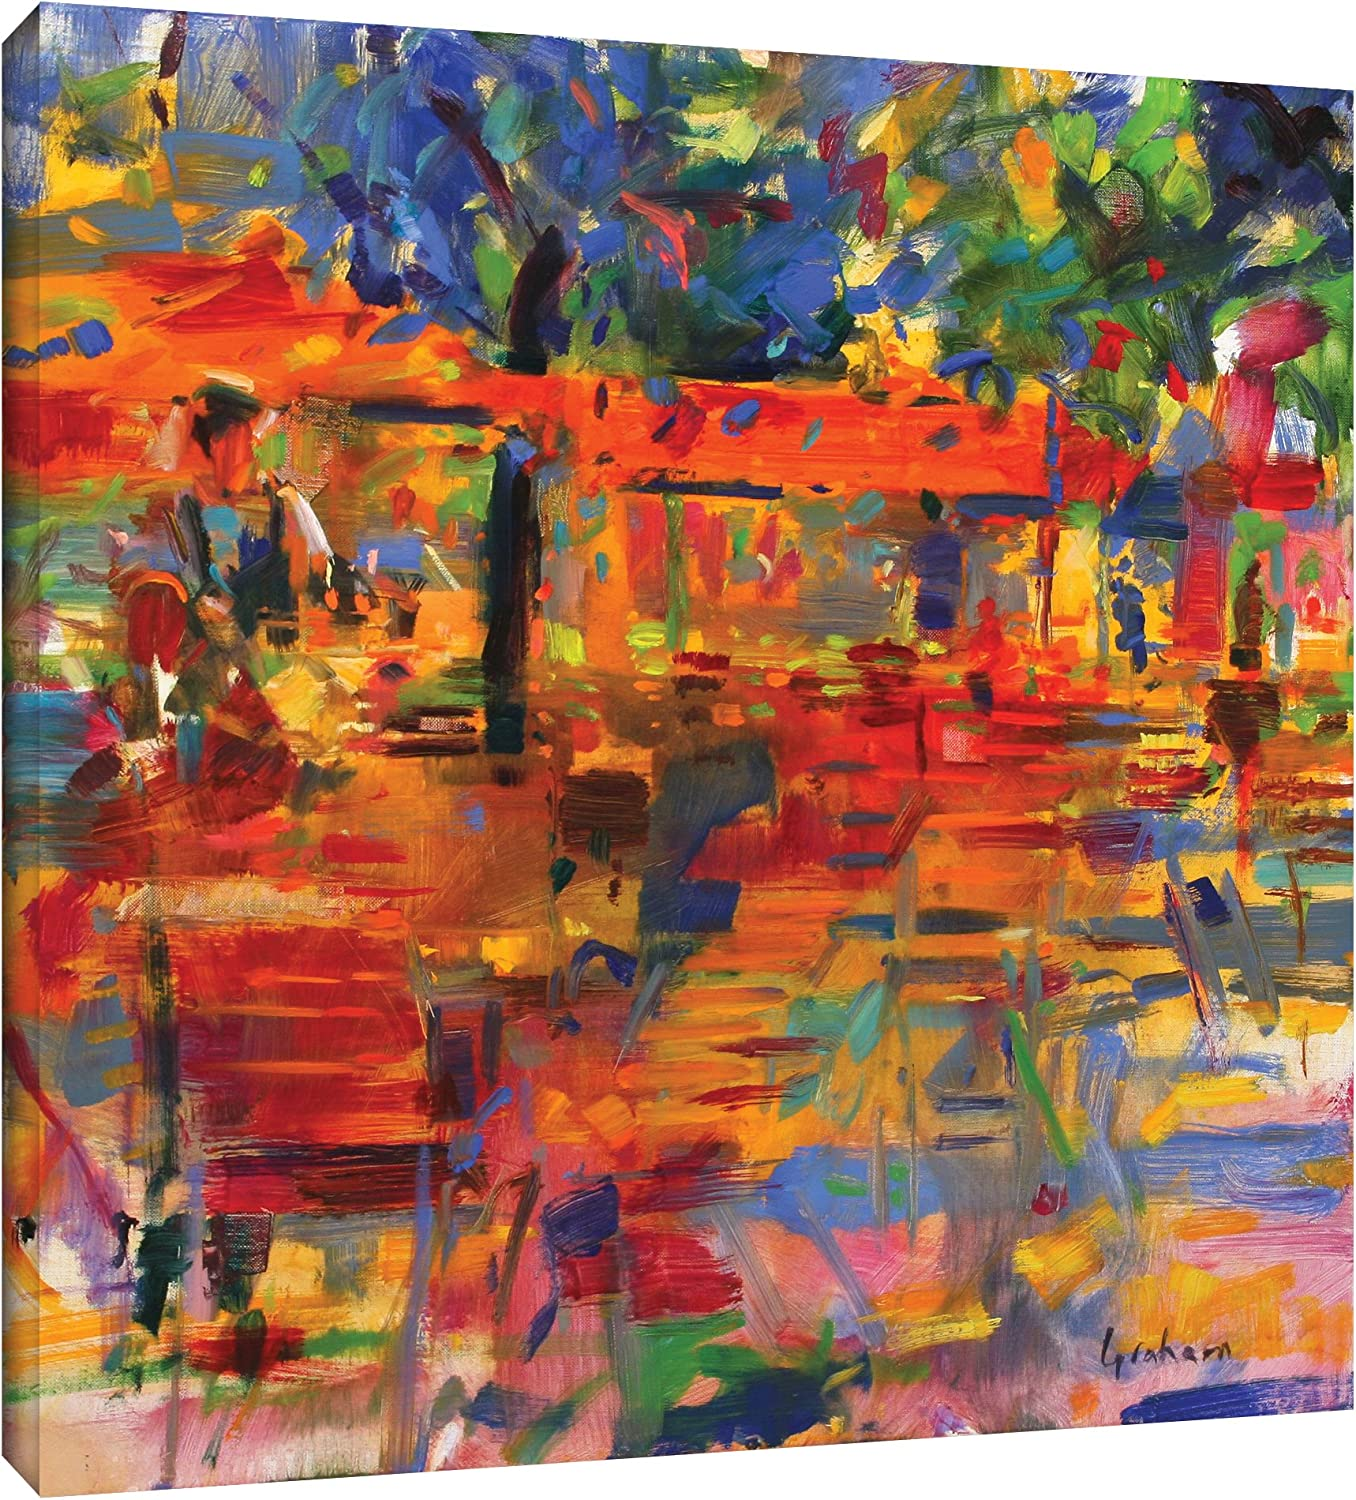 Peter Graham ''Falling Leaves, Paris'' Gallery Wrapped Canvas, 24X24